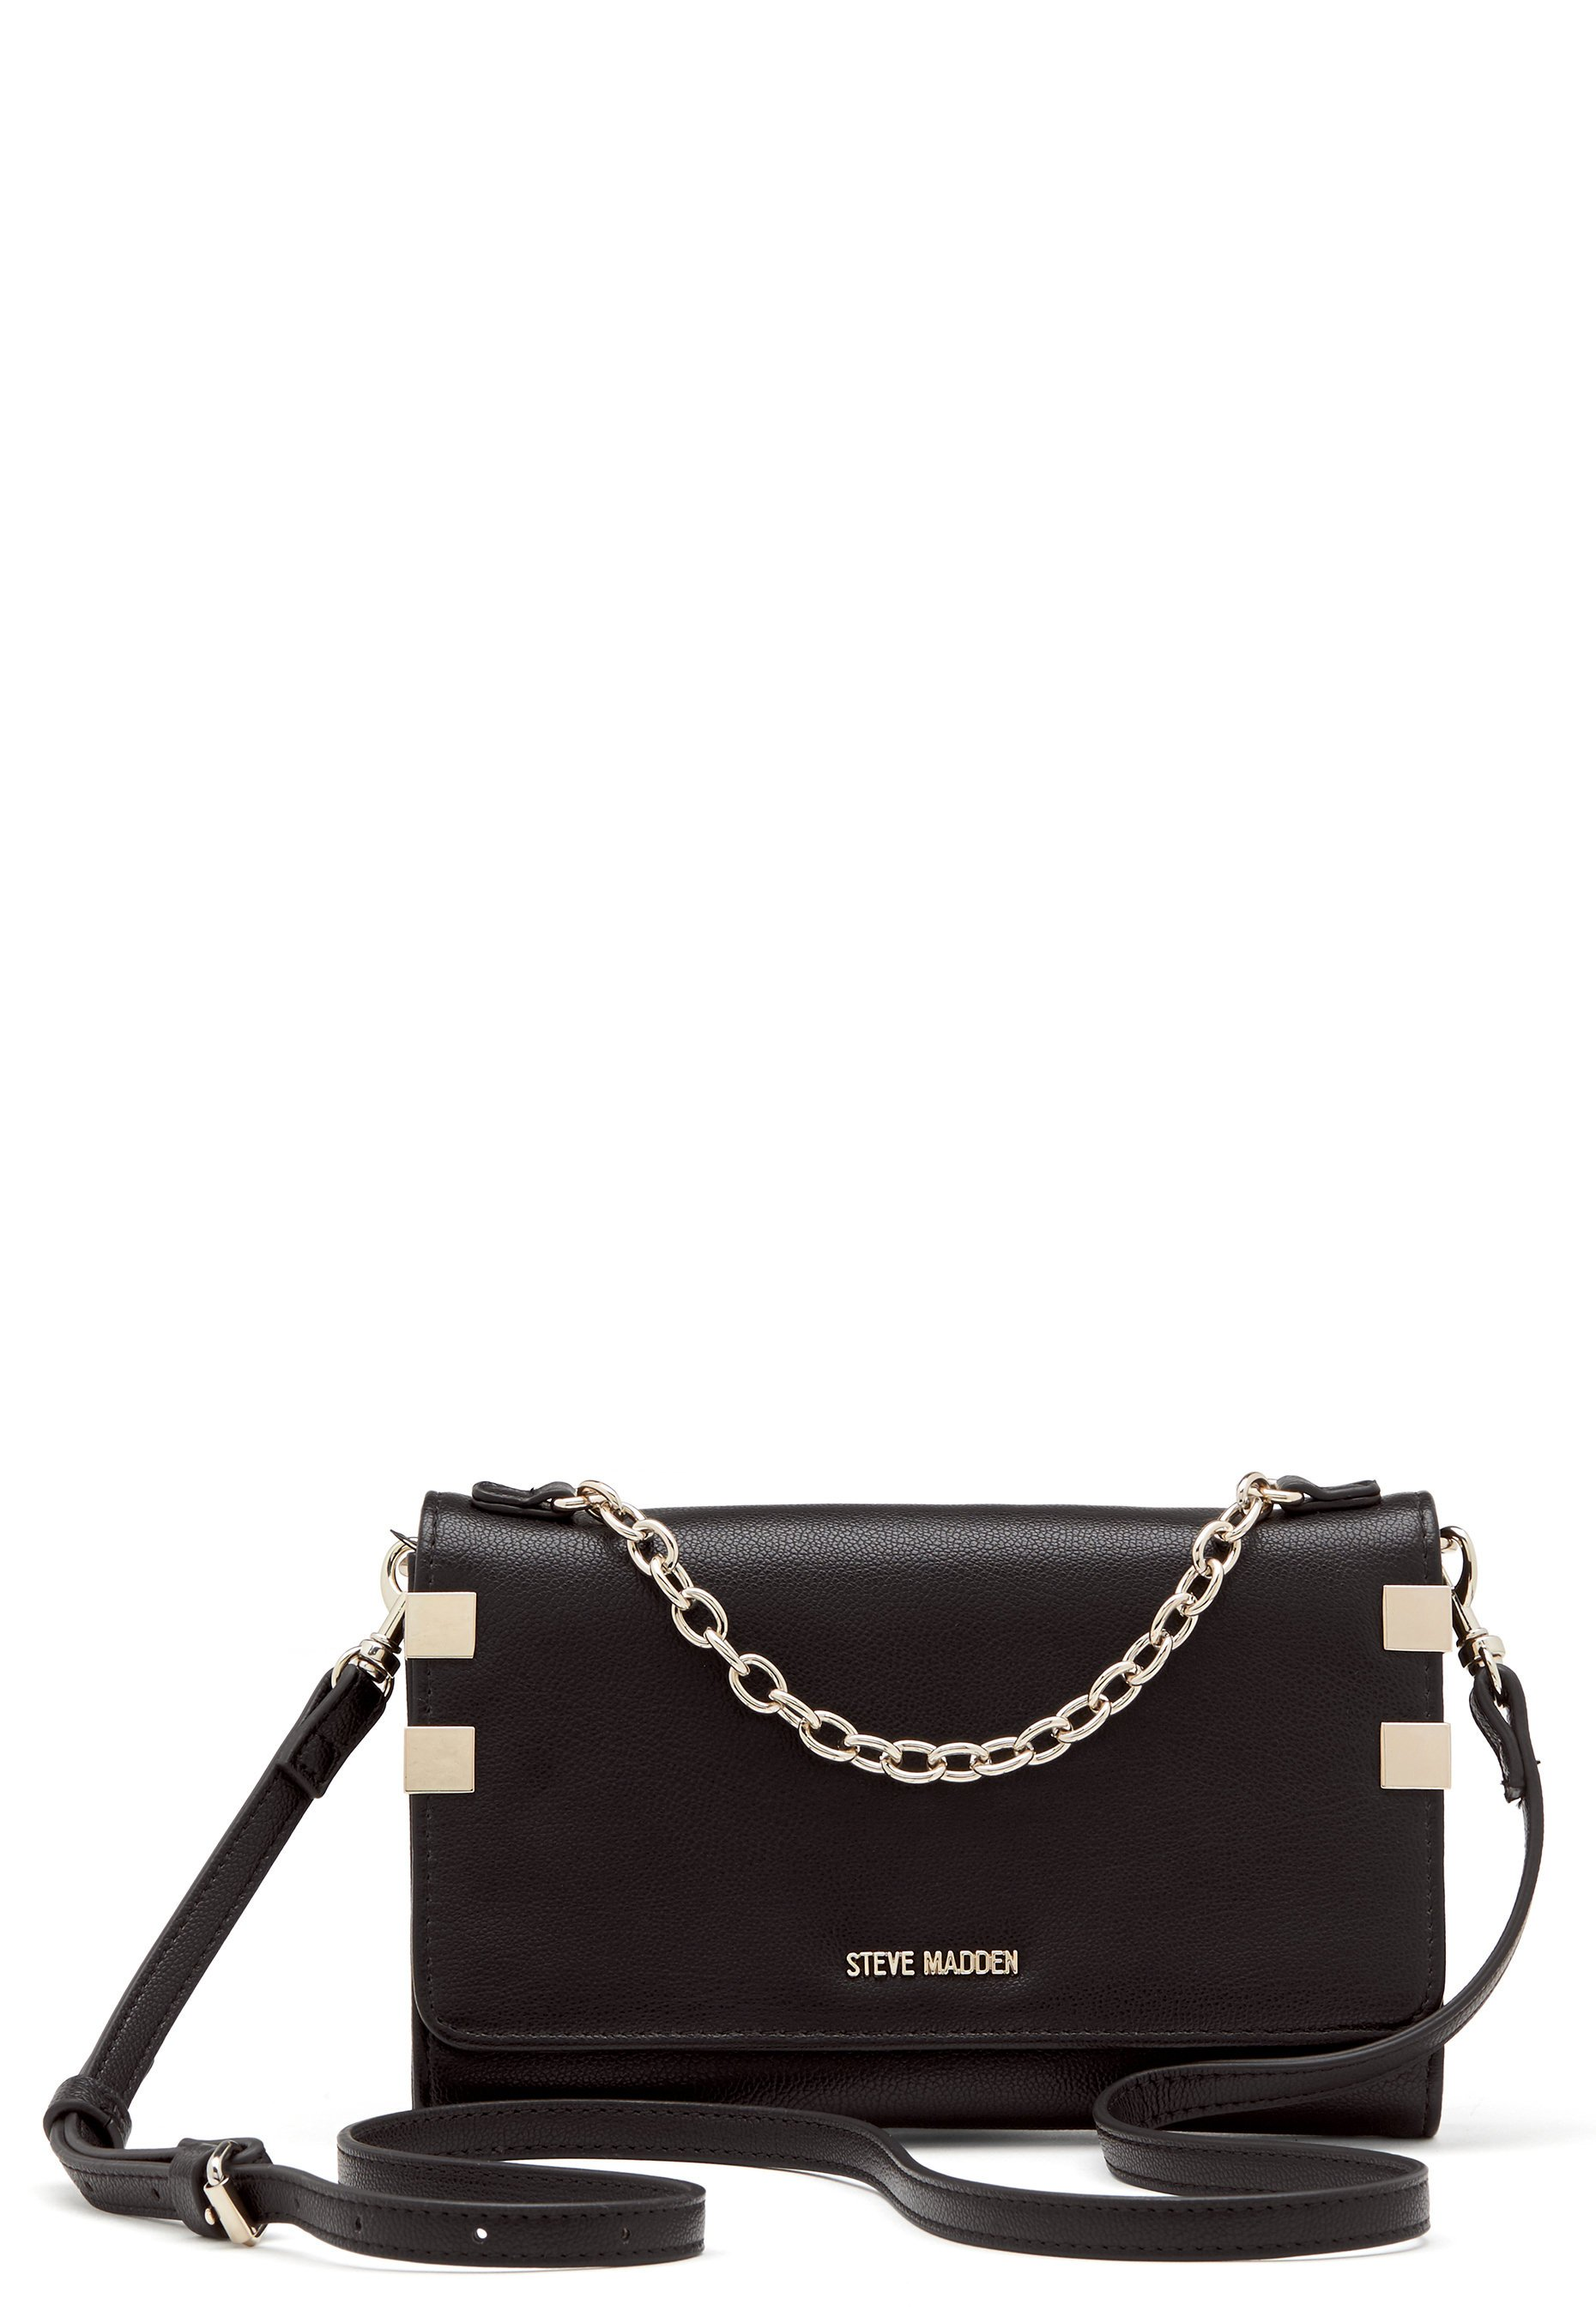 5c25488b751 Steve Madden Blair Wallet Black - Bubbleroom